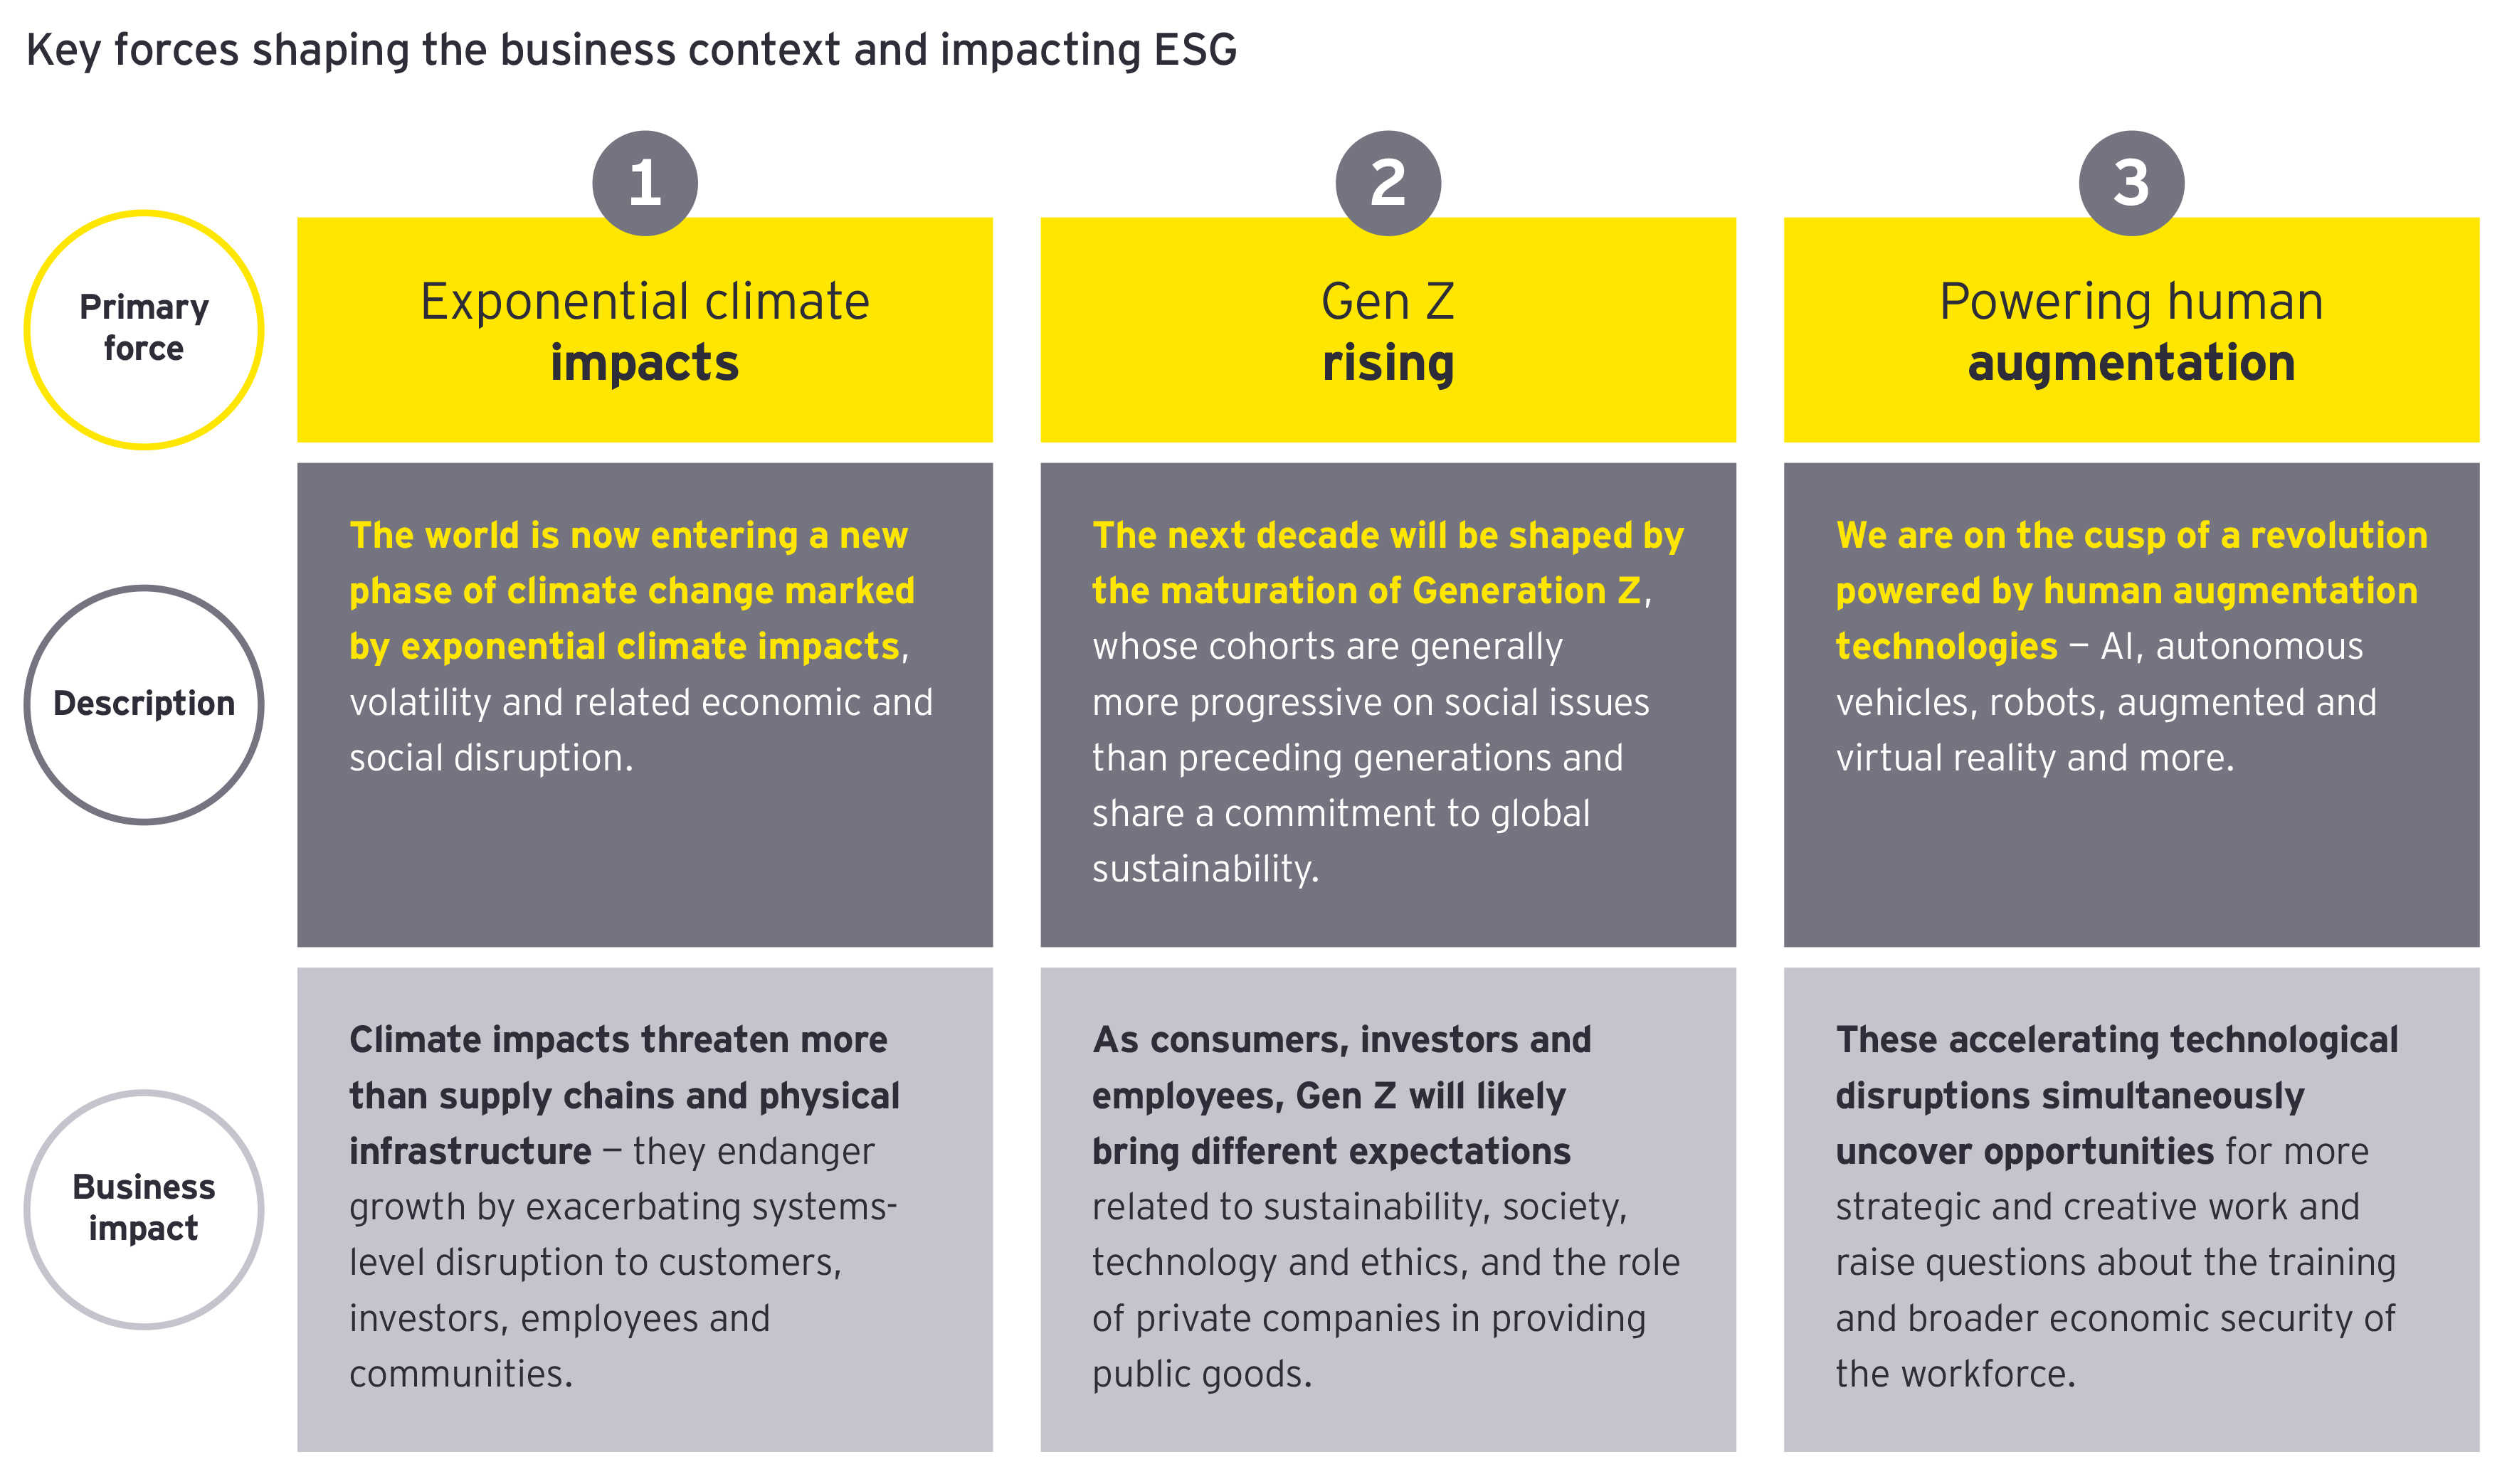 EY - Key forces shaping the business context